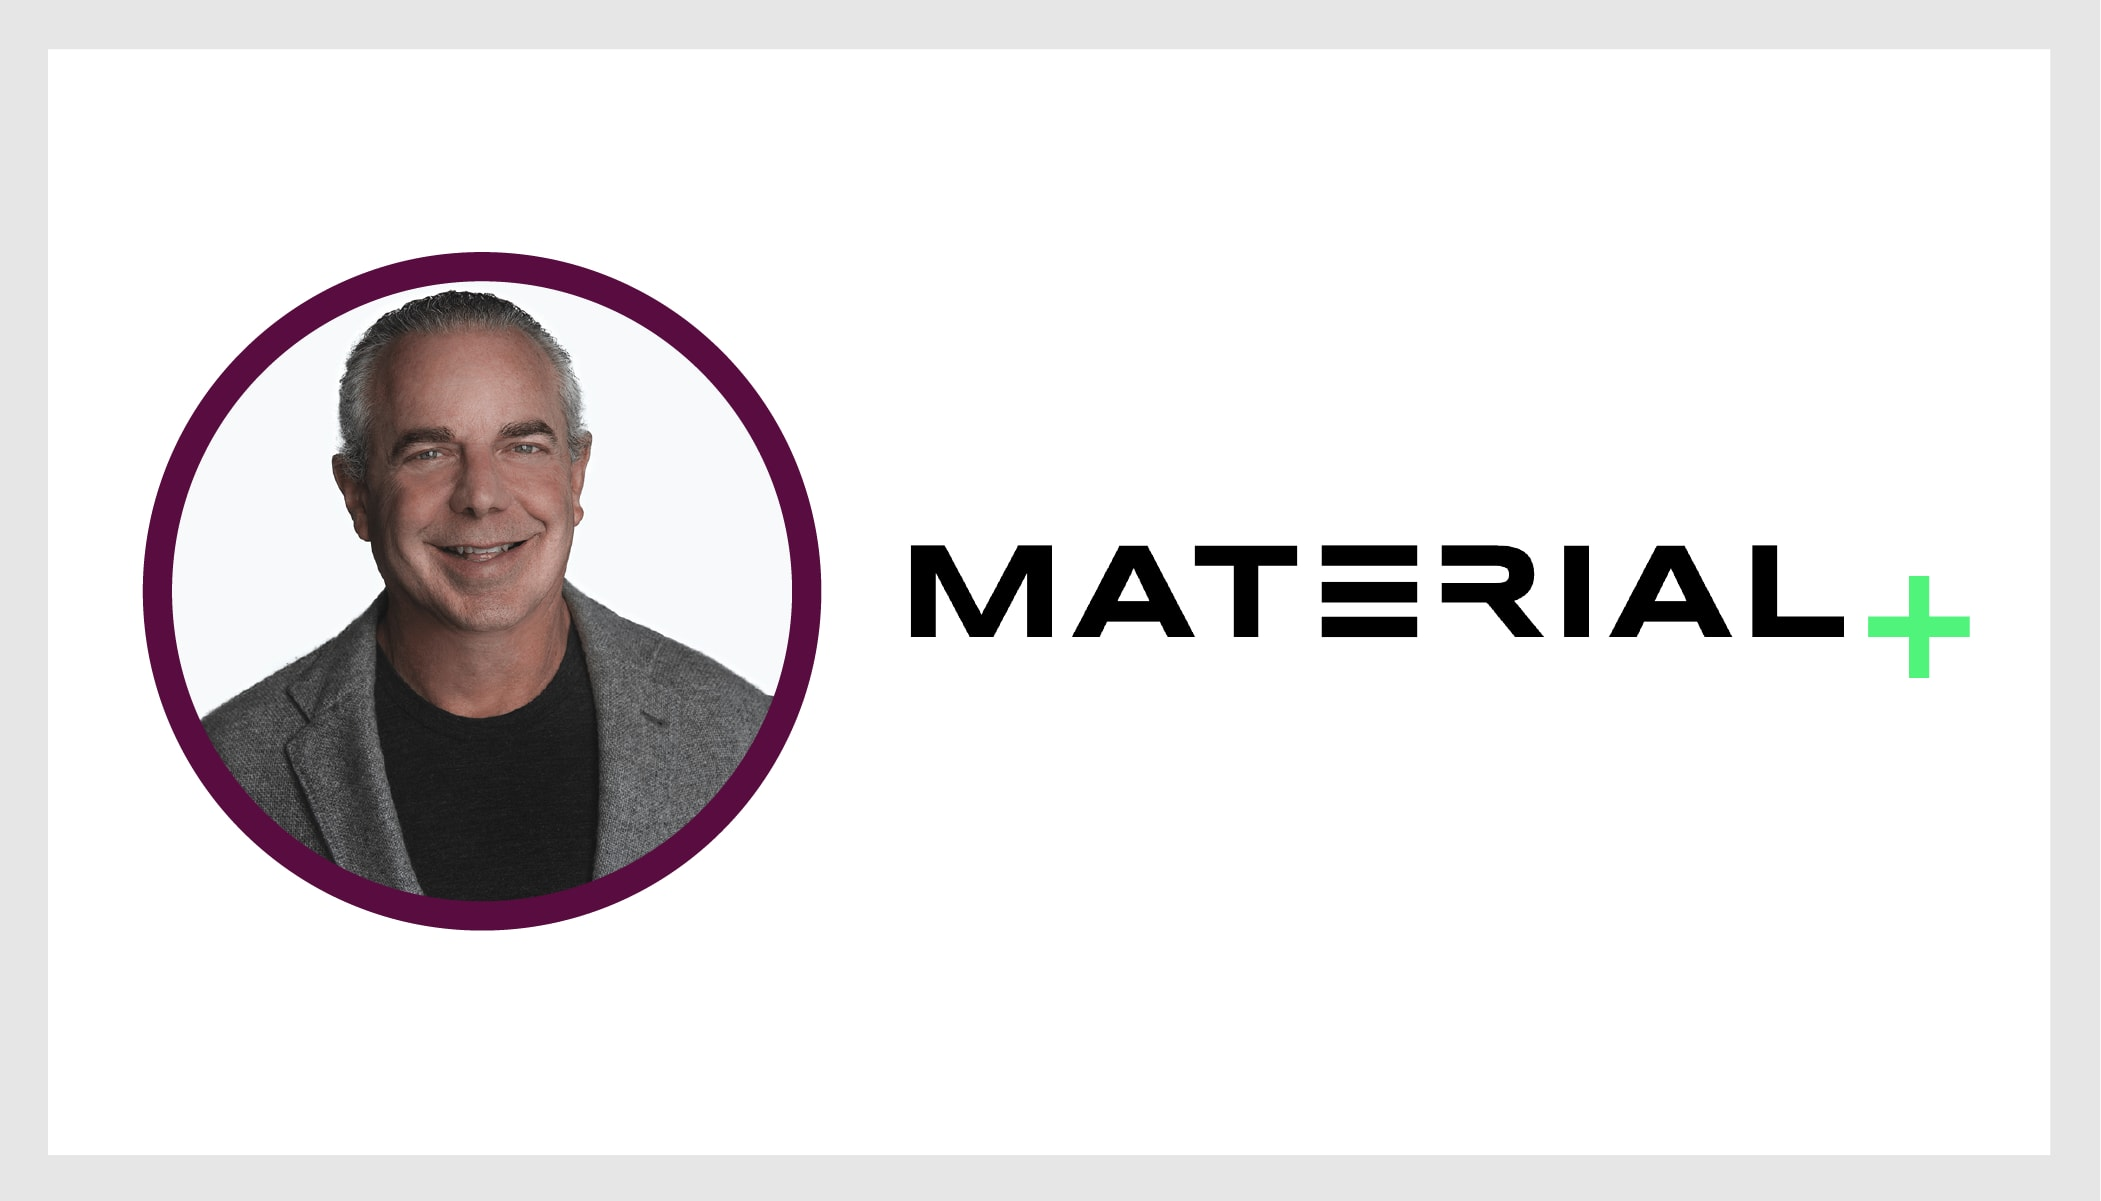 Dave Sackman, CEO and Chairman of Material